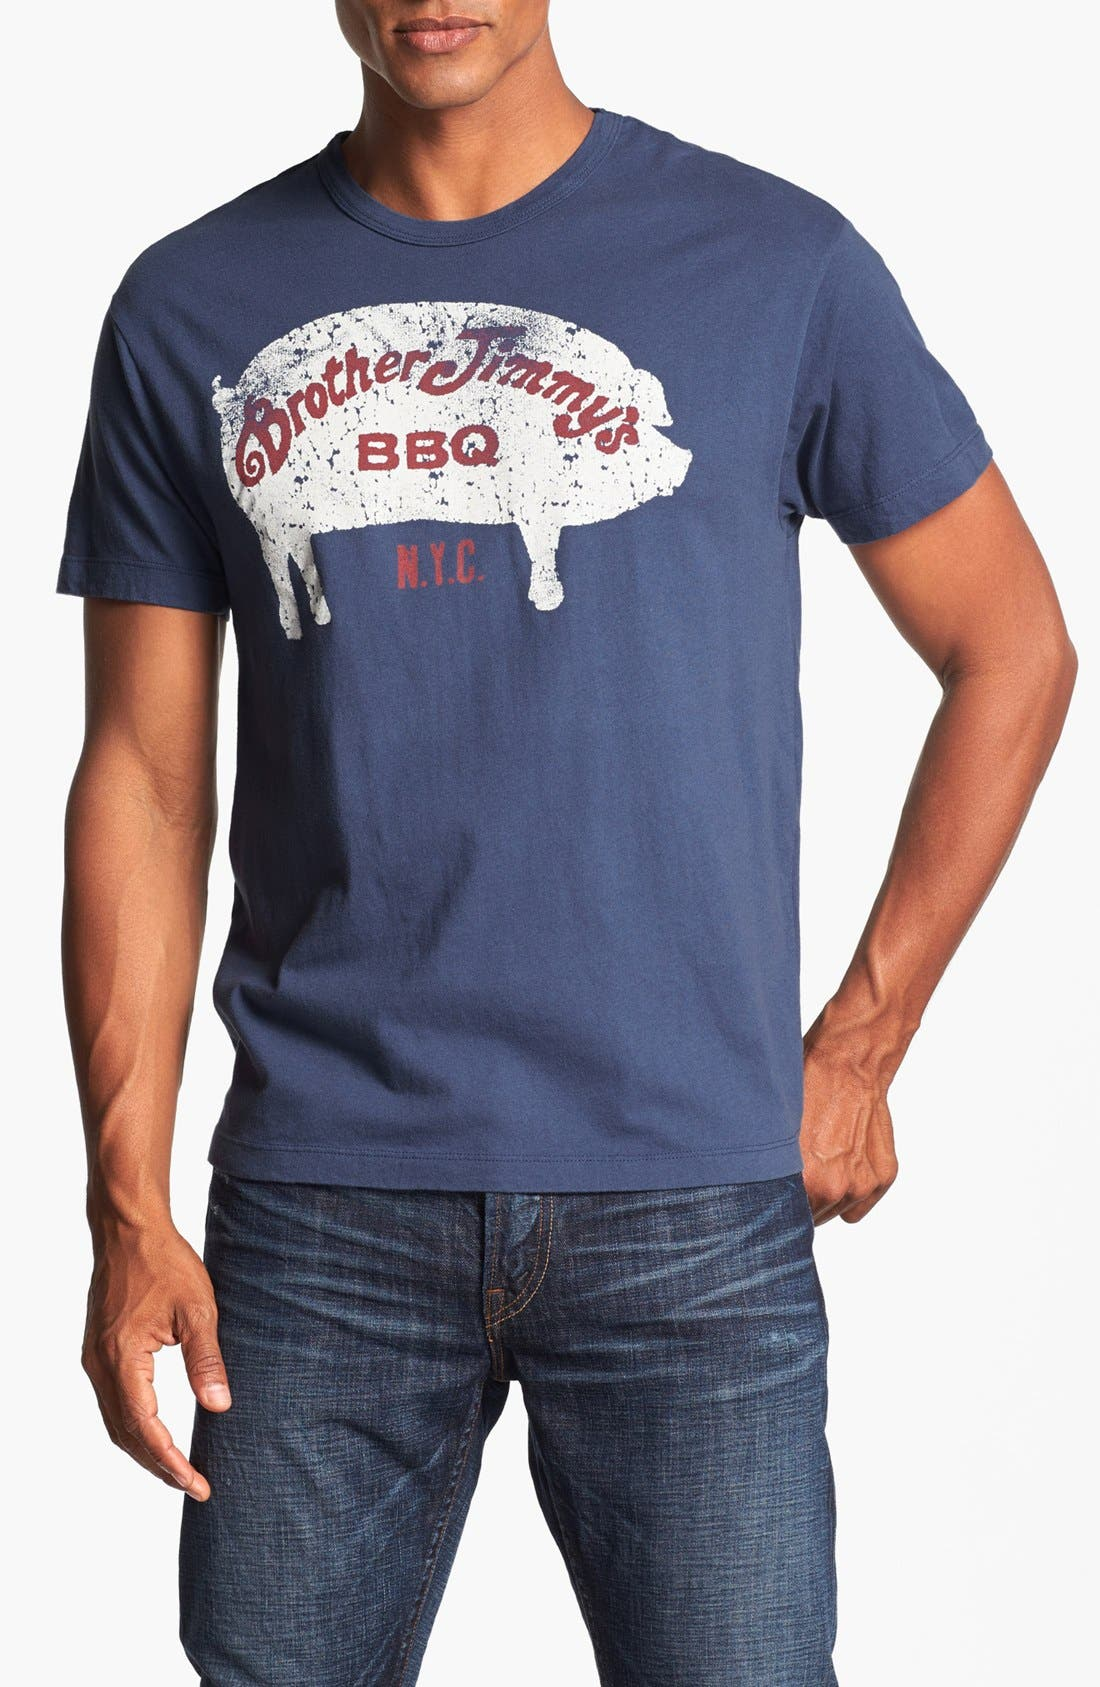 Main Image - Tailgate 'Brother Jimmy's BBQ' Trim Fit T-Shirt